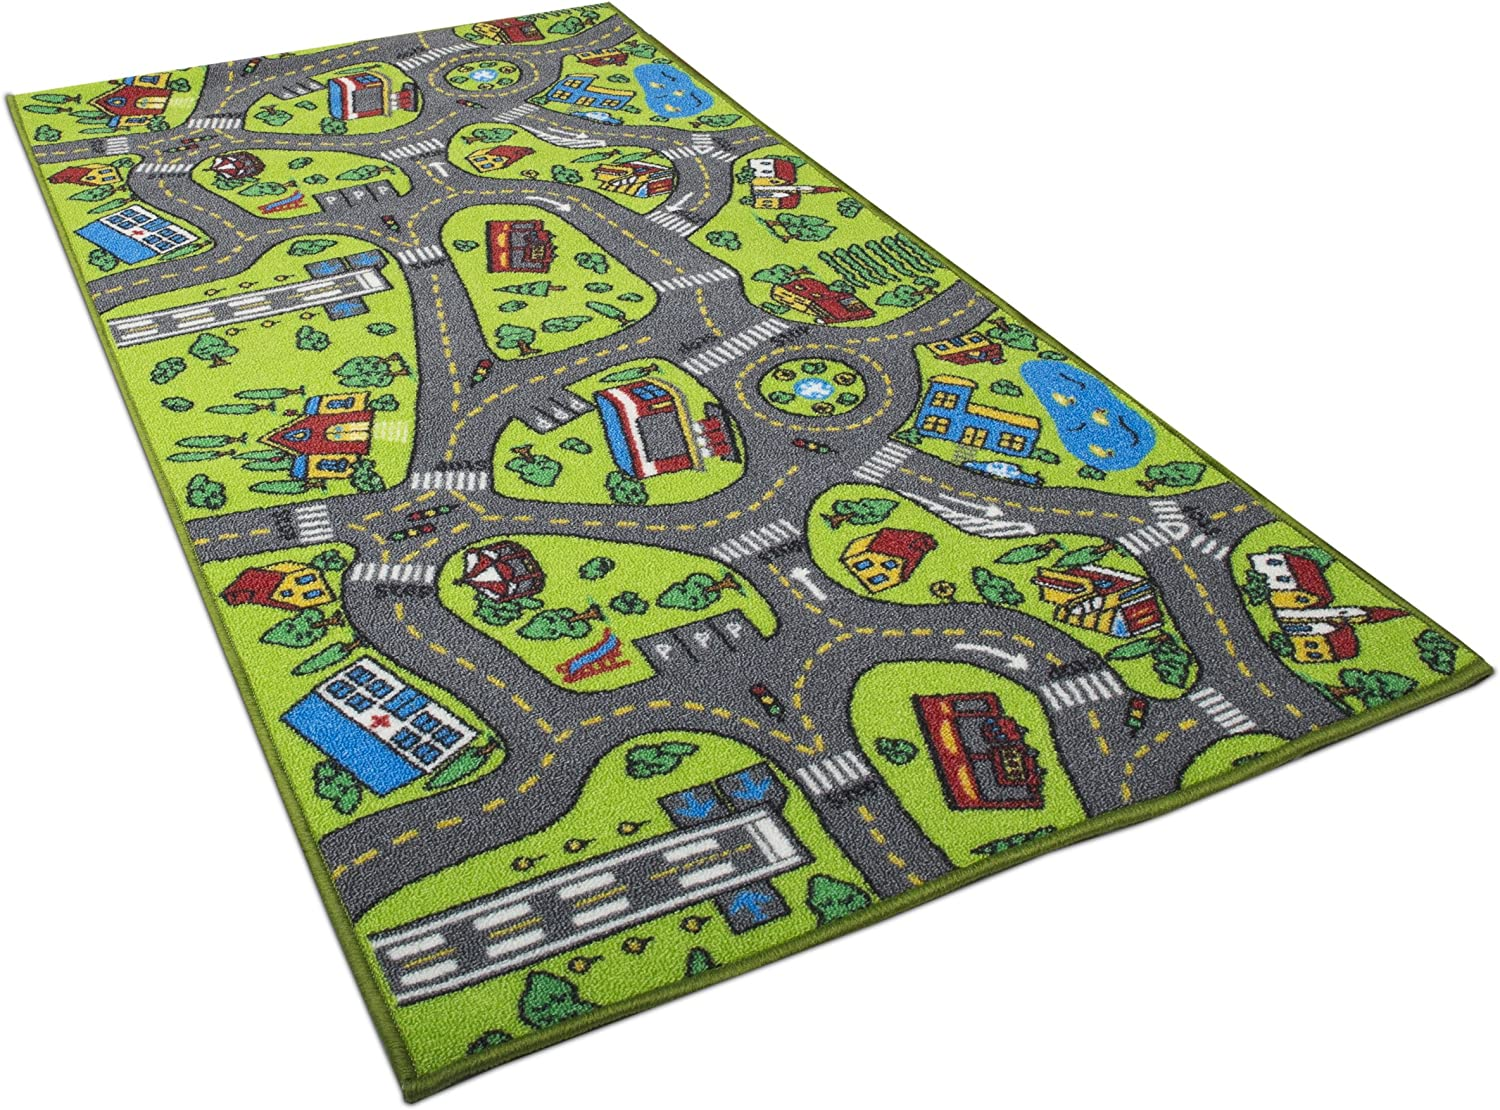 Kids Carpet Playmat Rug City Life Great For Playing With Cars And Toys Play Learn And Have Fun Safely Kids Baby Children Educational Road Traffic Play Mat For Bedroom